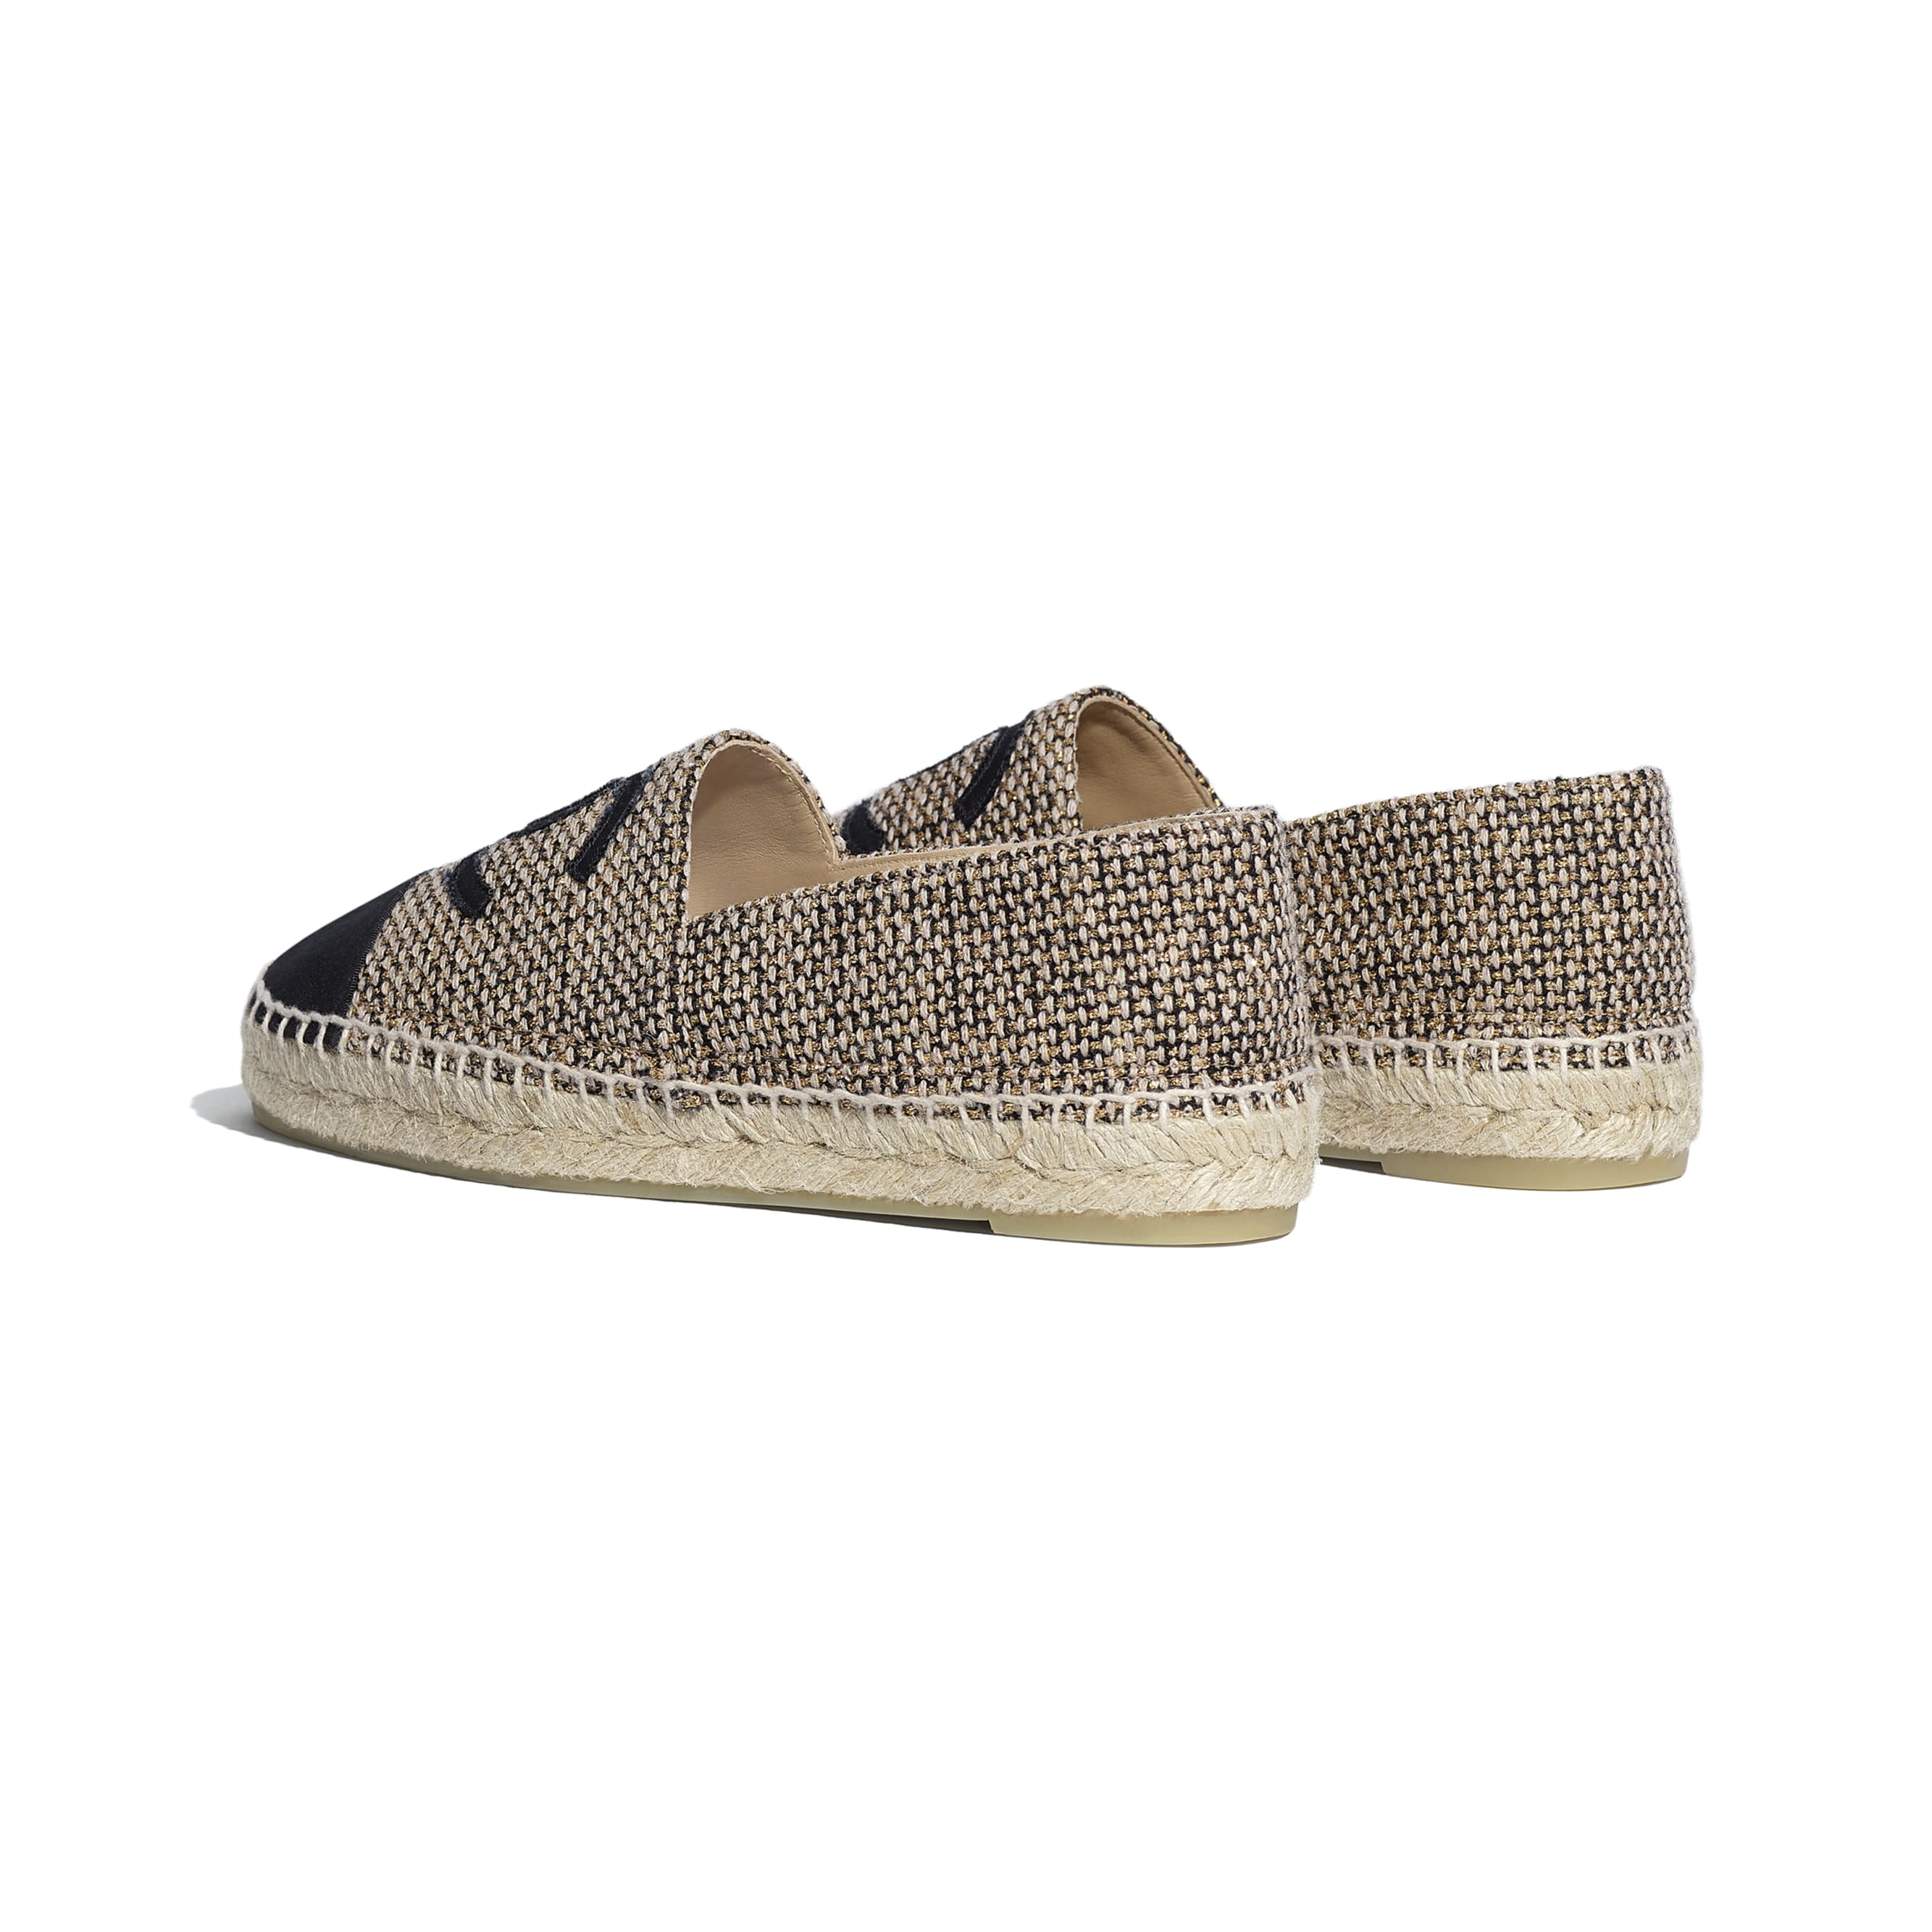 Espadrilles - Gold, Beige & Black - Tweed & Grosgrain - CHANEL - Other view - see standard sized version